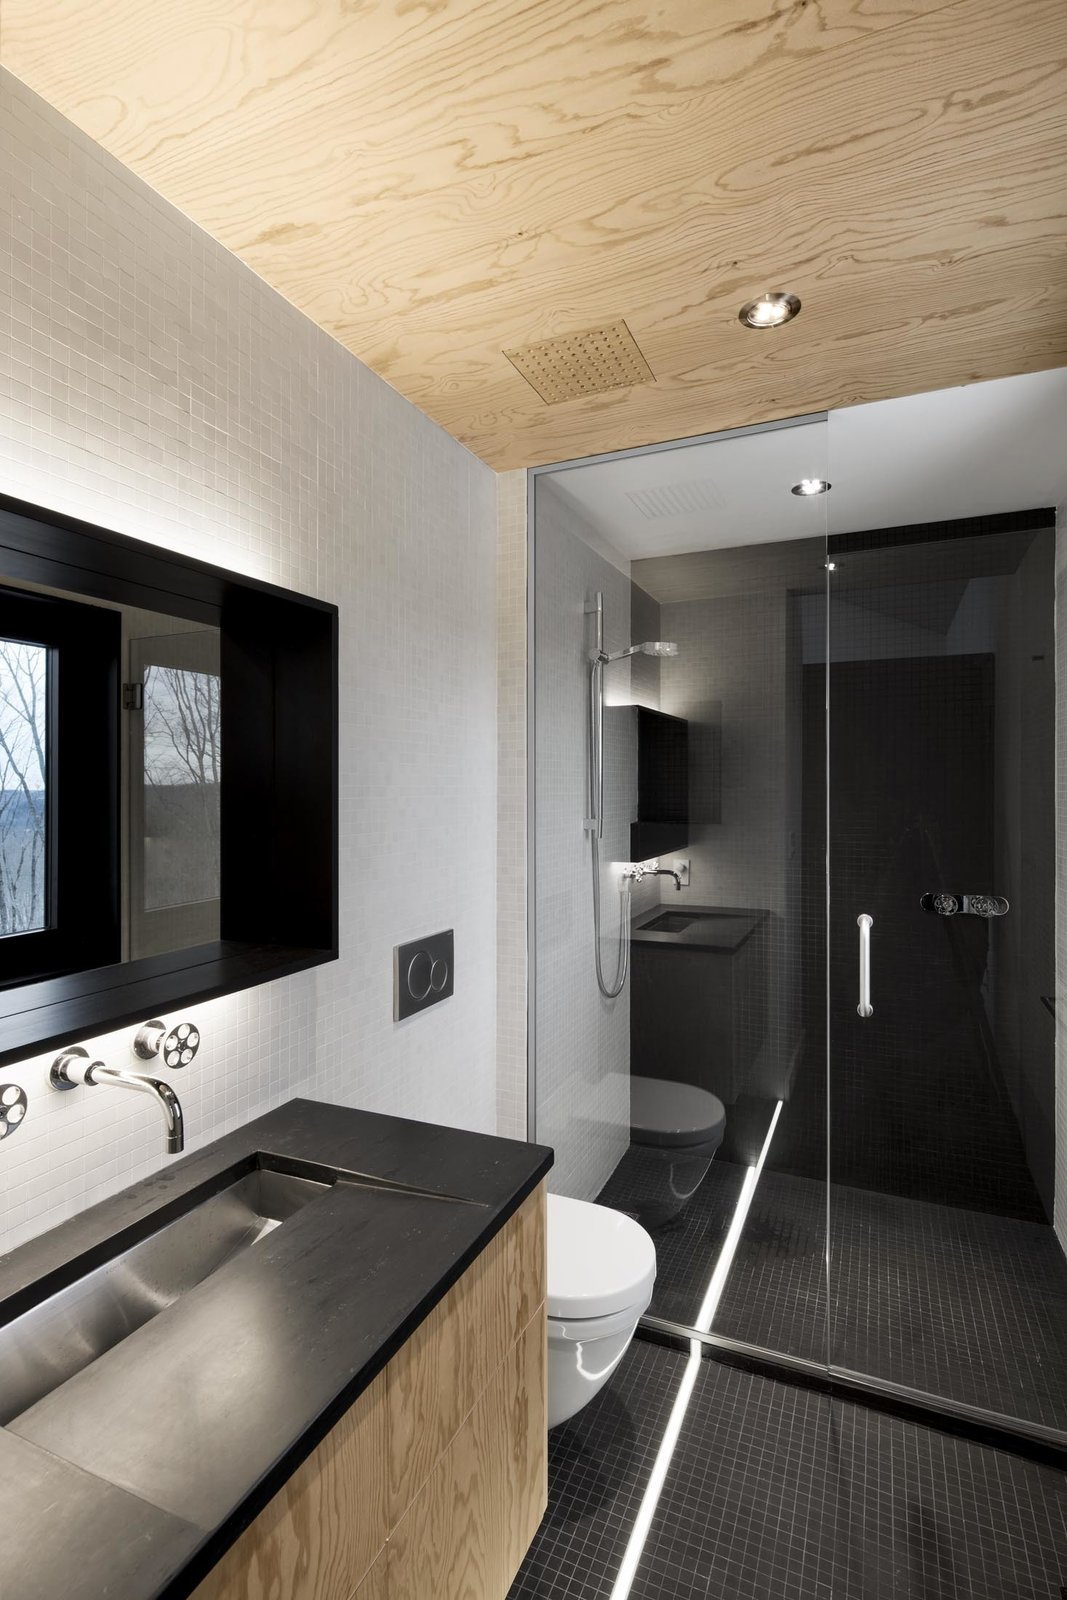 In the bathroom, the architects mounted a Kohler sink on a sloped, custom-slate countertop. Since the stone doesn't hold up well in water, the architect switched to black mosaic tile in the shower. The faucets are from Cabano's Century series. Tagged: Bath Room, Ceramic Tile Floor, Undermount Sink, Full Shower, Ceiling Lighting, and Enclosed Shower.  Bathroom from Amazing Cantilevered Home in the Mountains